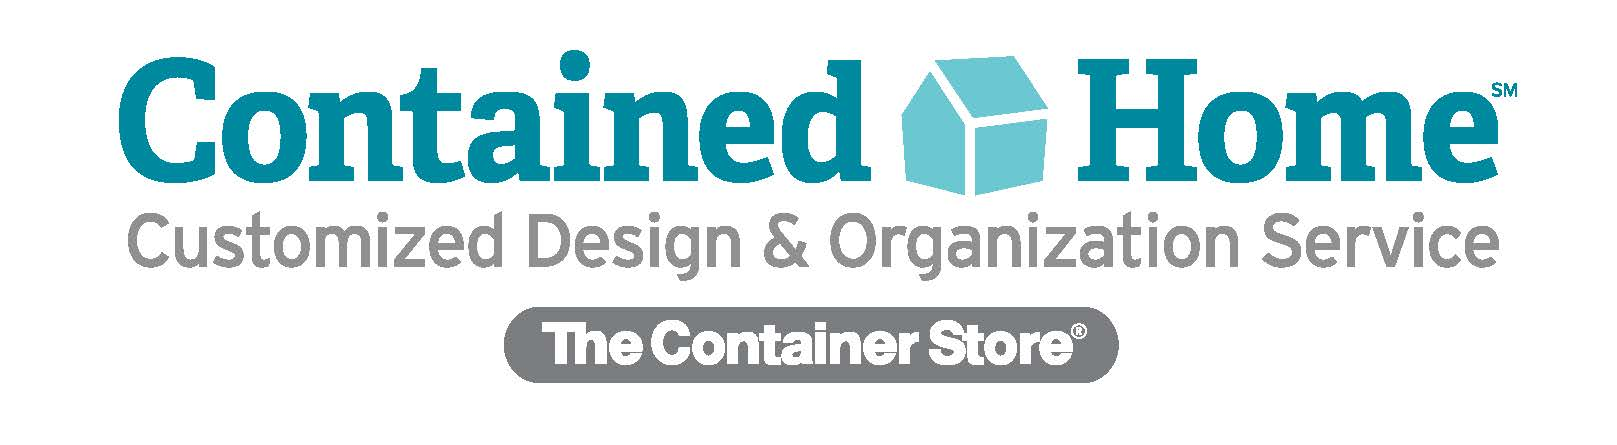 Contained home partnership with the container store kuzak 39 s closet - Container store home ...